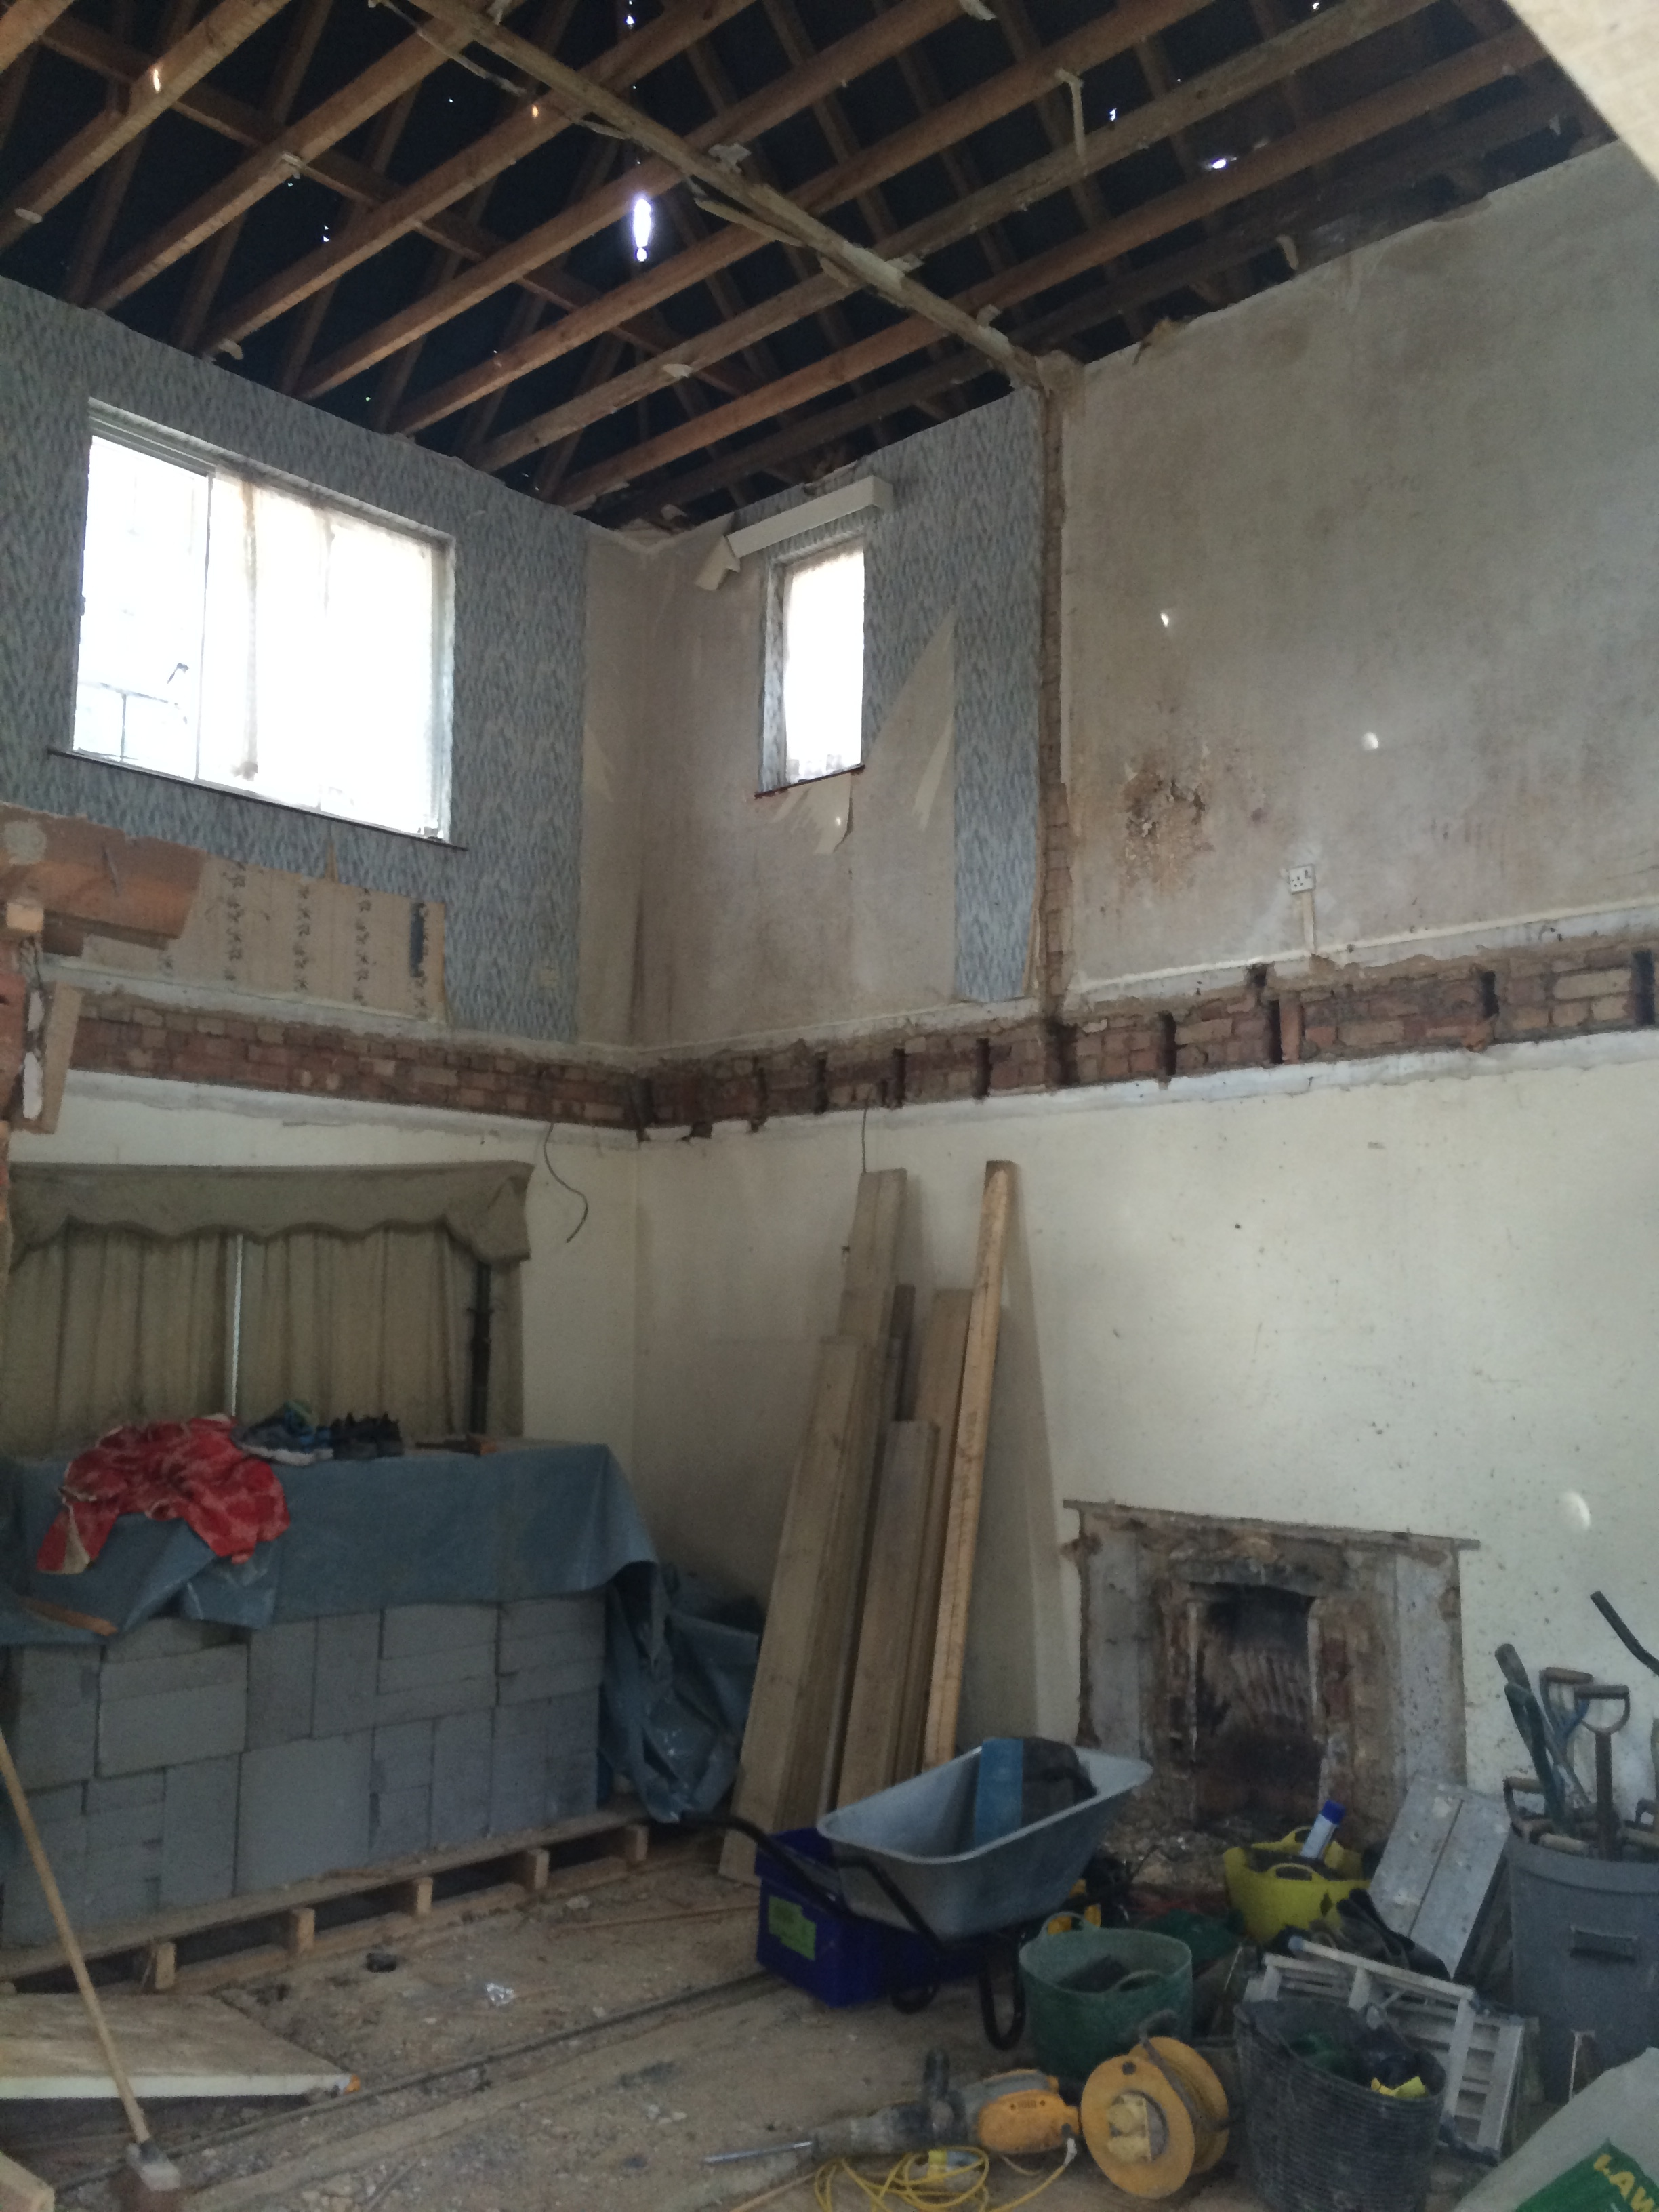 during renovation both the floors and ceilings were removed